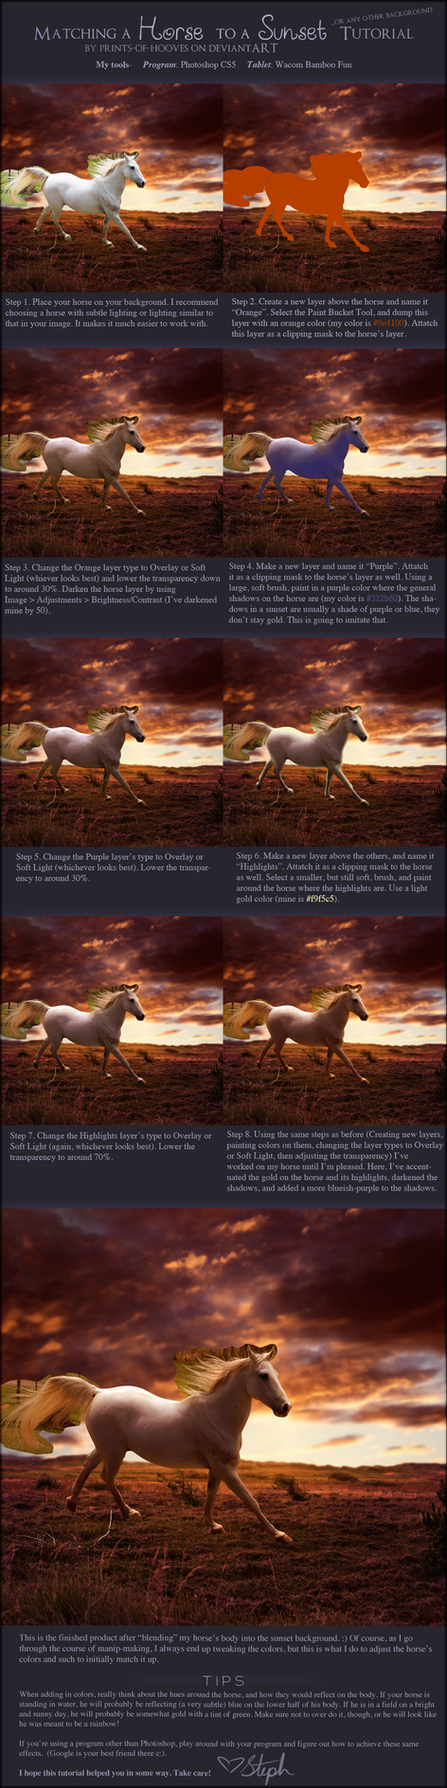 Matching a Horse to a Sunset Photomanip Tutorial by prints-of-hooves